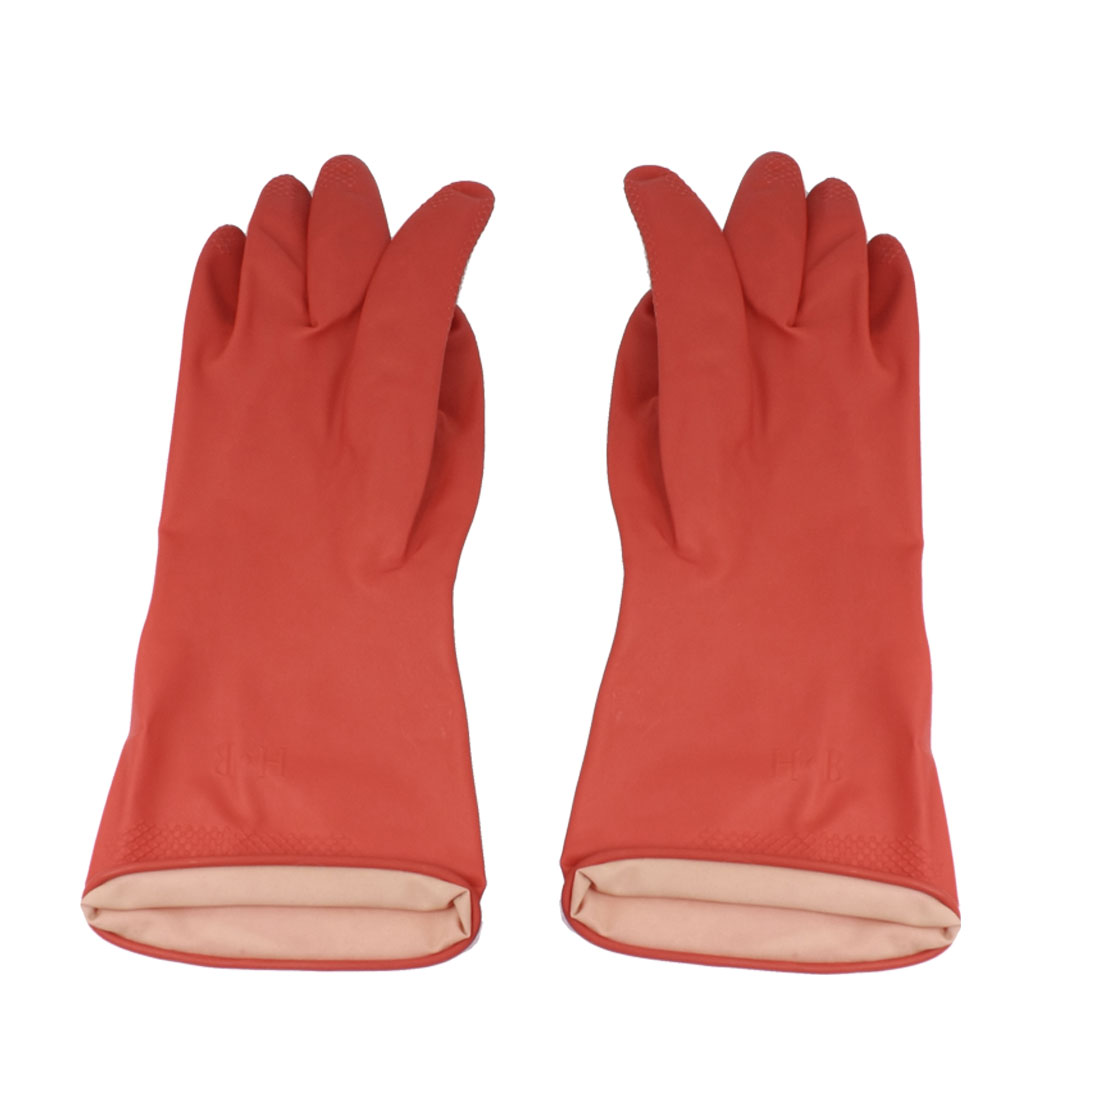 Pair Household Assistant Antislip Reusable Clean Wash Latex Rubber Gloves Red M